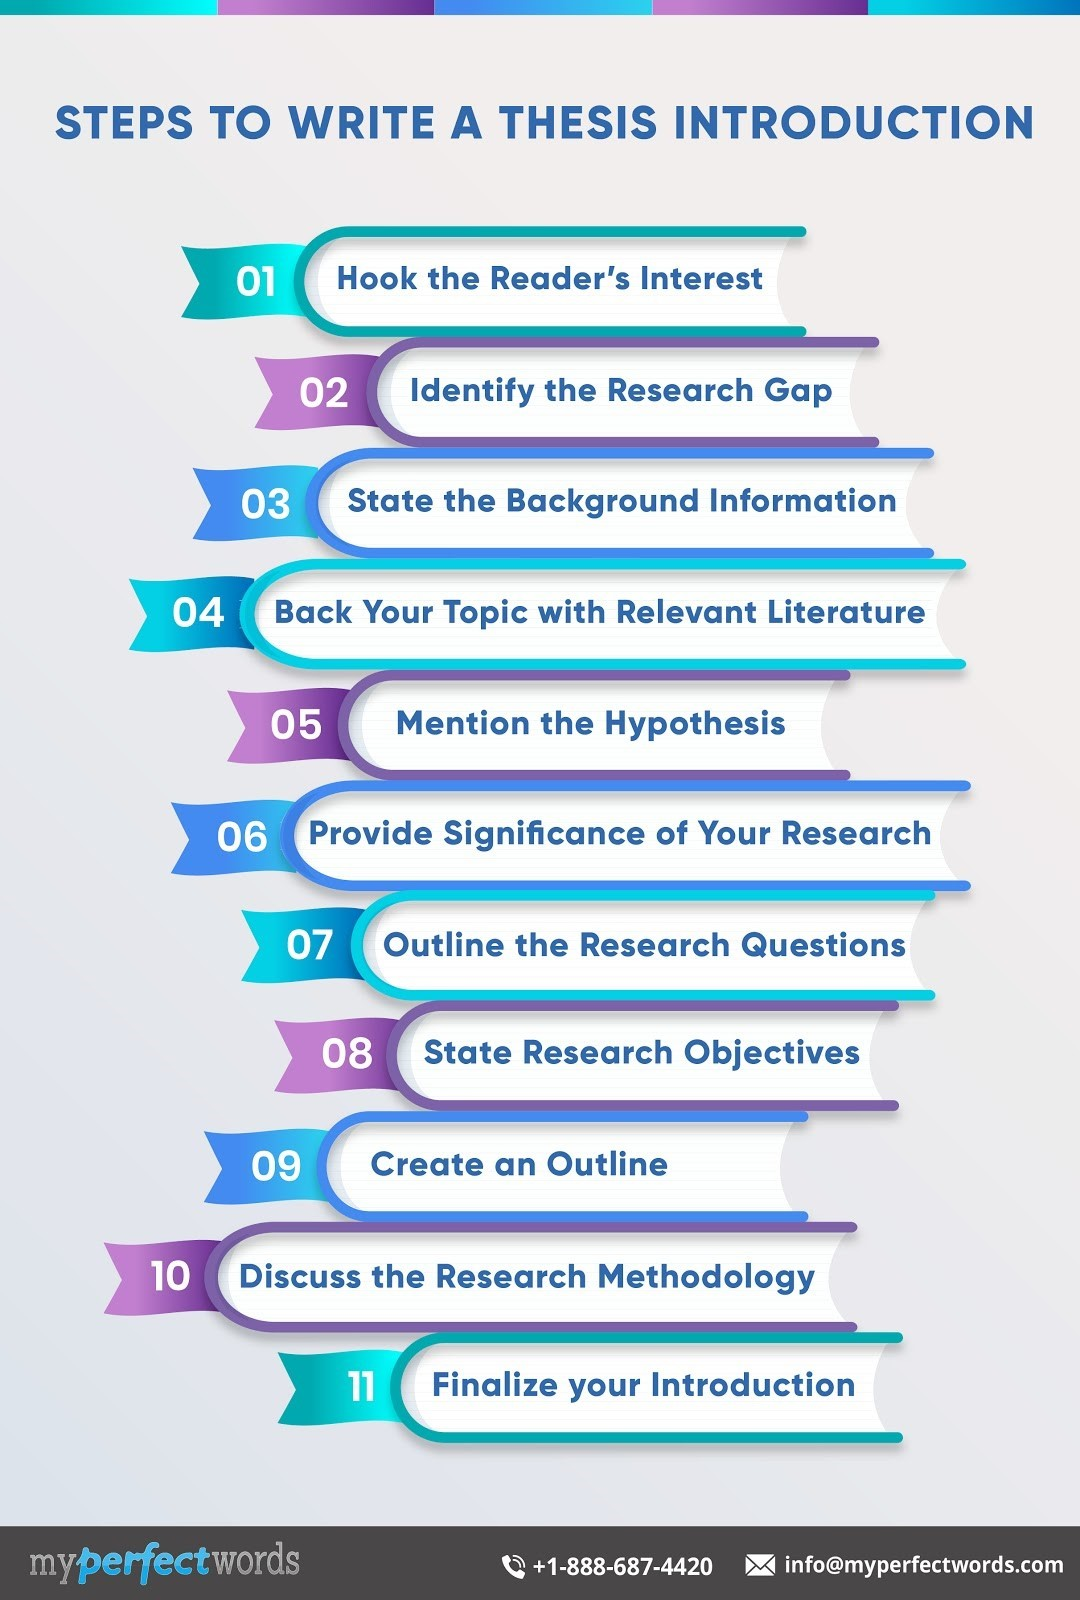 Steps to Write a Thesis Introduction